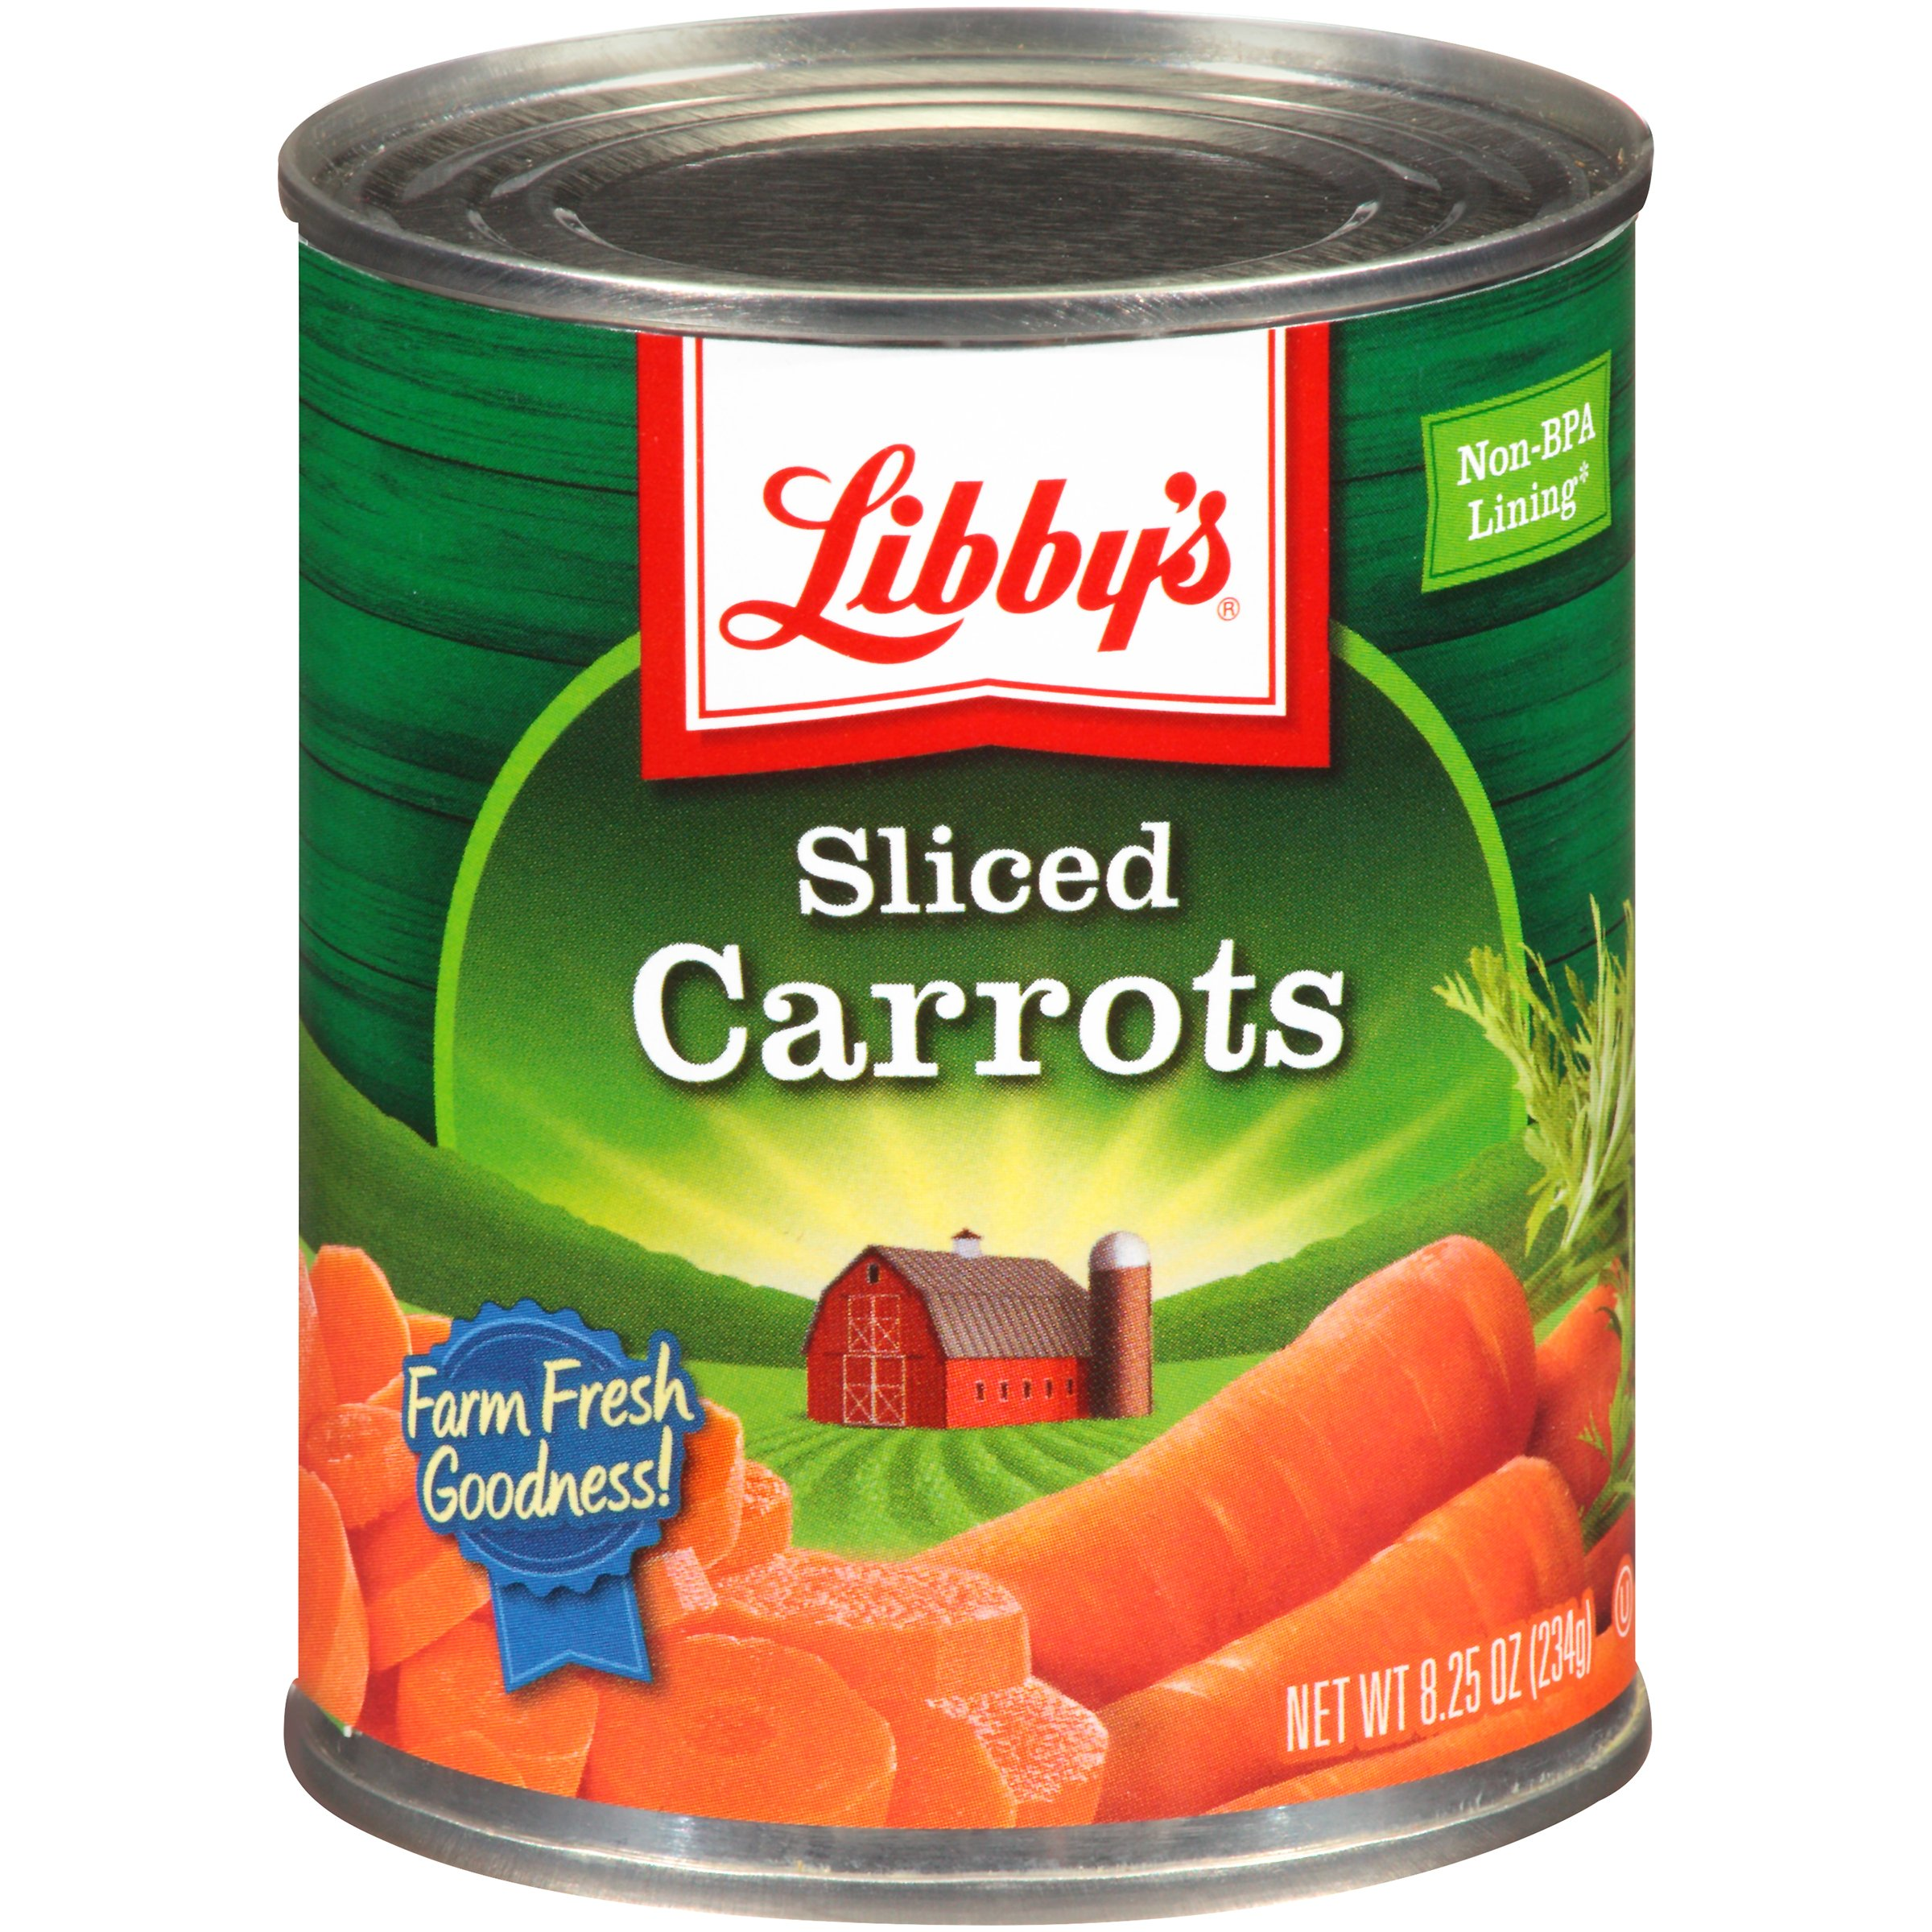 Libby's Sliced Carrots, 8.25 Oz (Pack of 12)